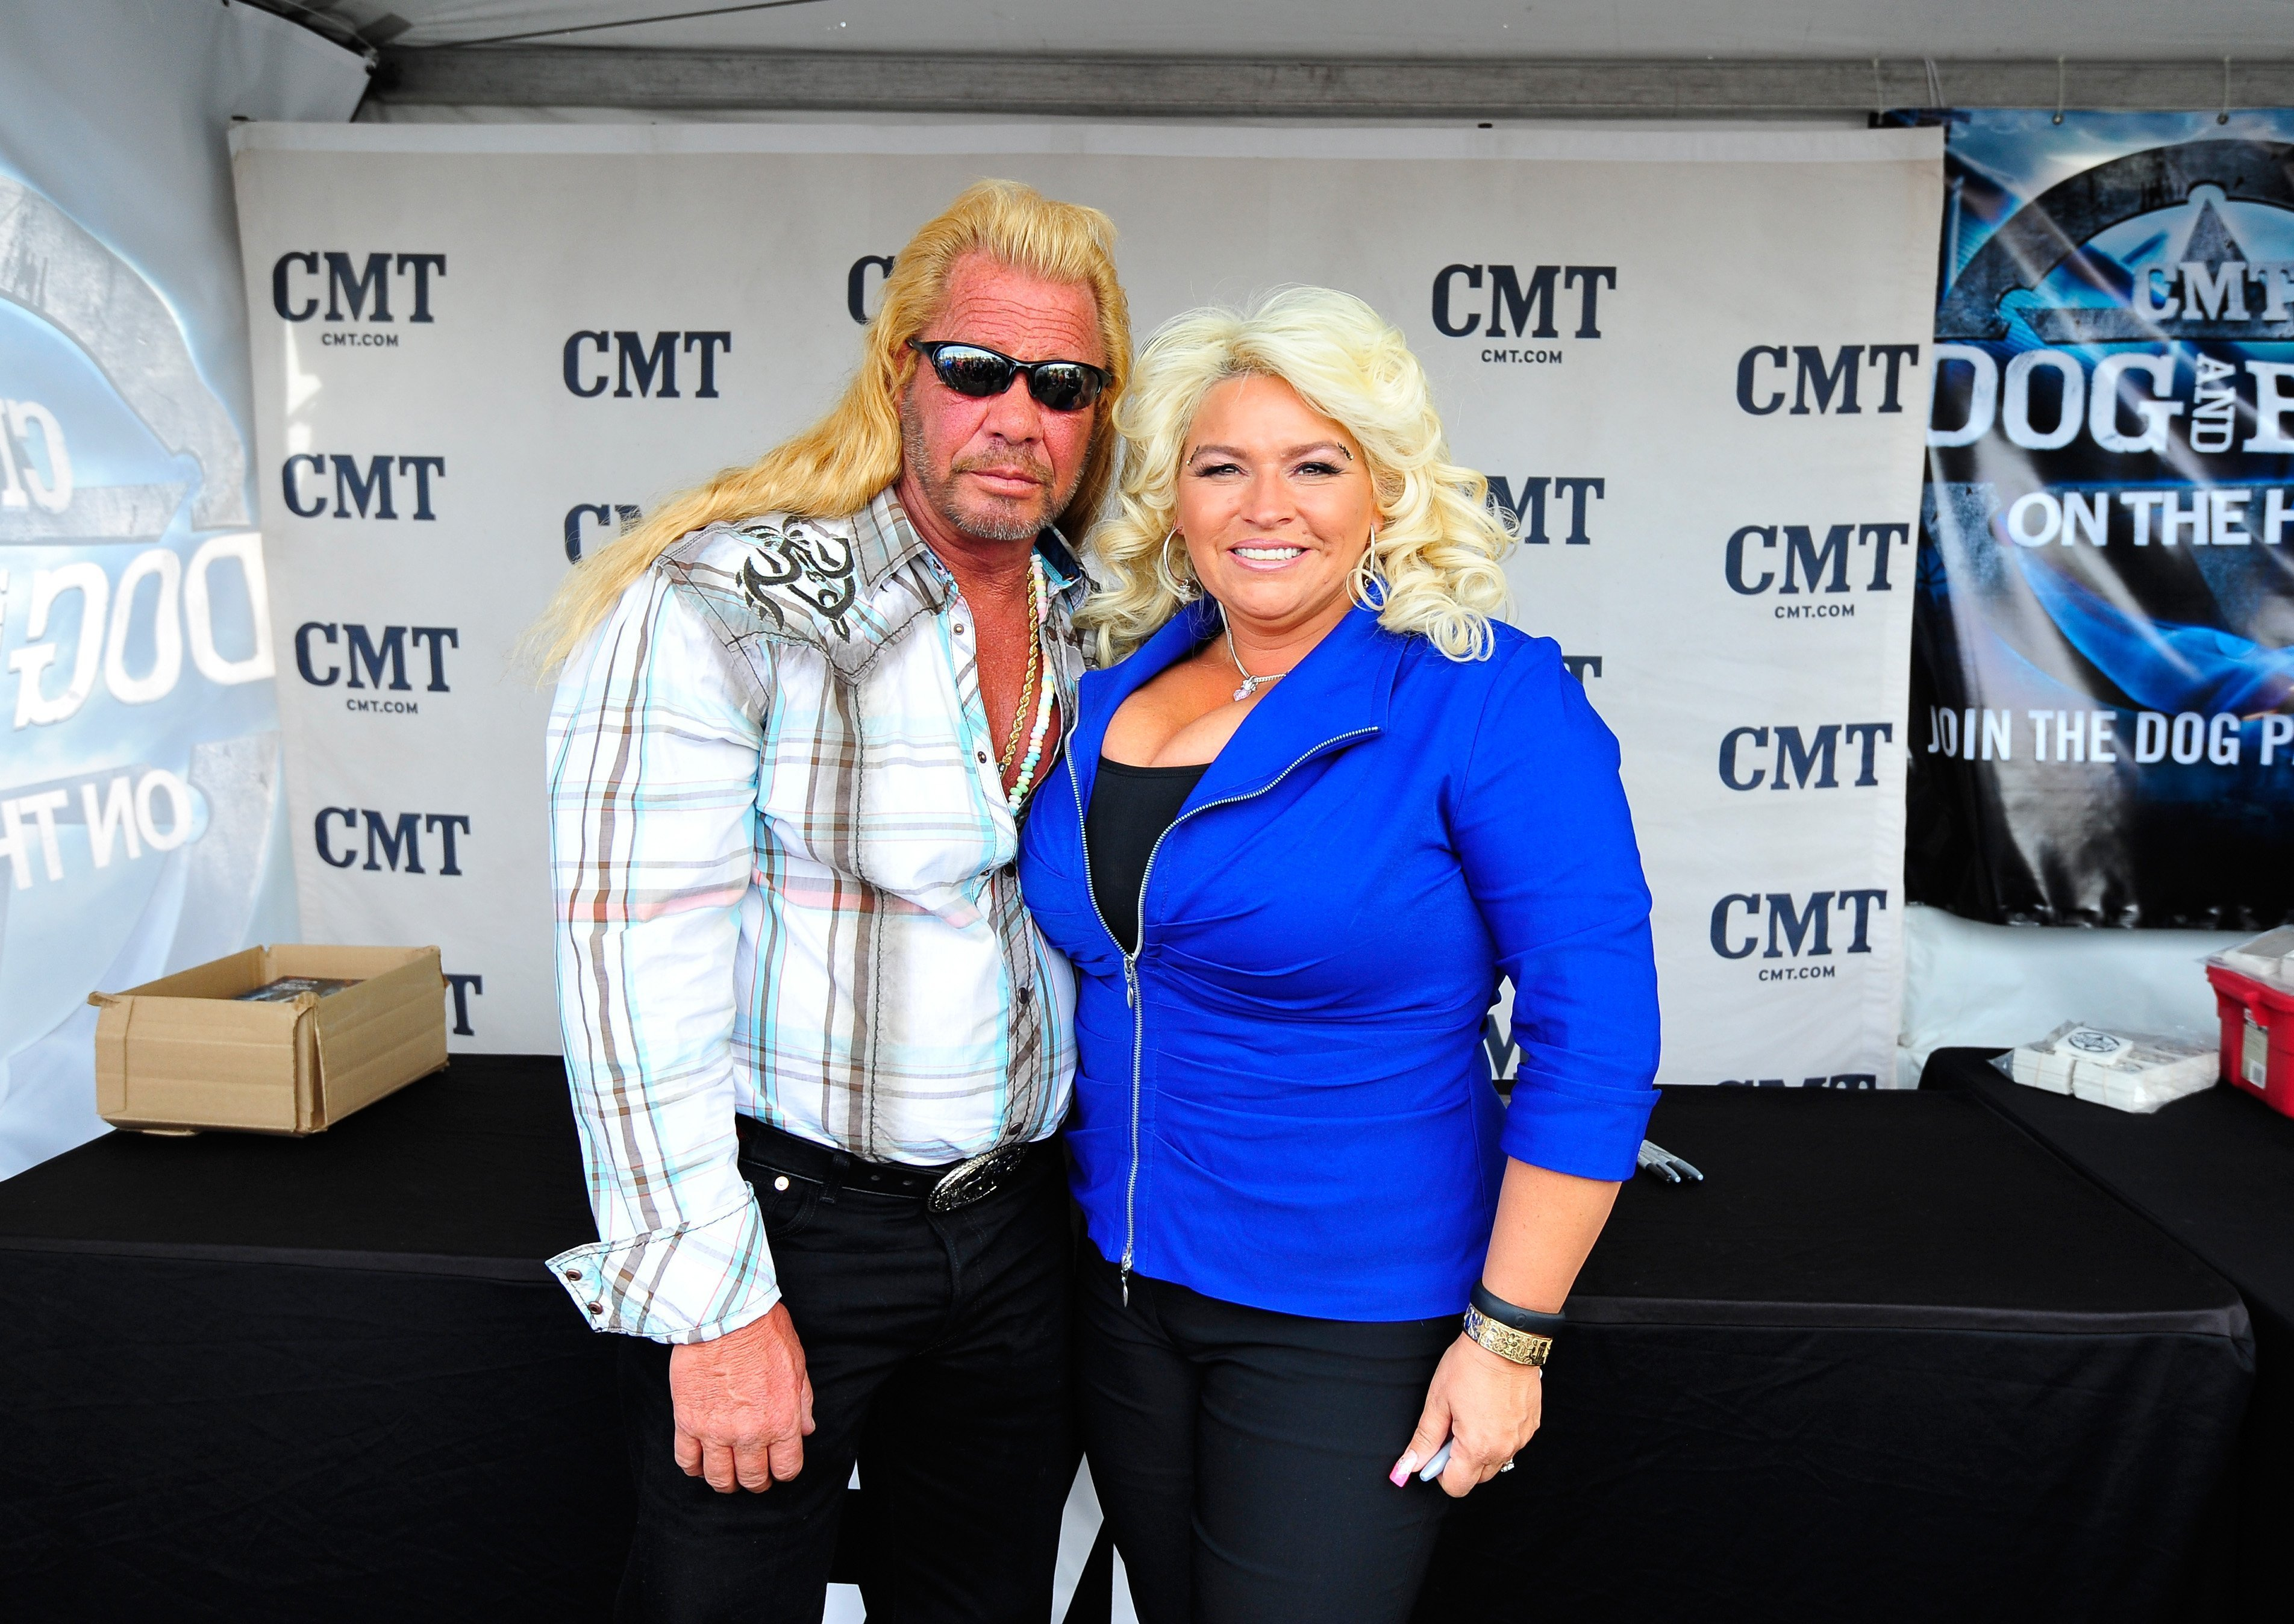 Duane 'Dog' and Beth Chapman at the ACM Experience during the 48th Annual Academy of Country Music Awards at the Orleans Arena on April 5, 2013 in Las Vegas, Nevada | Photo: Getty Images